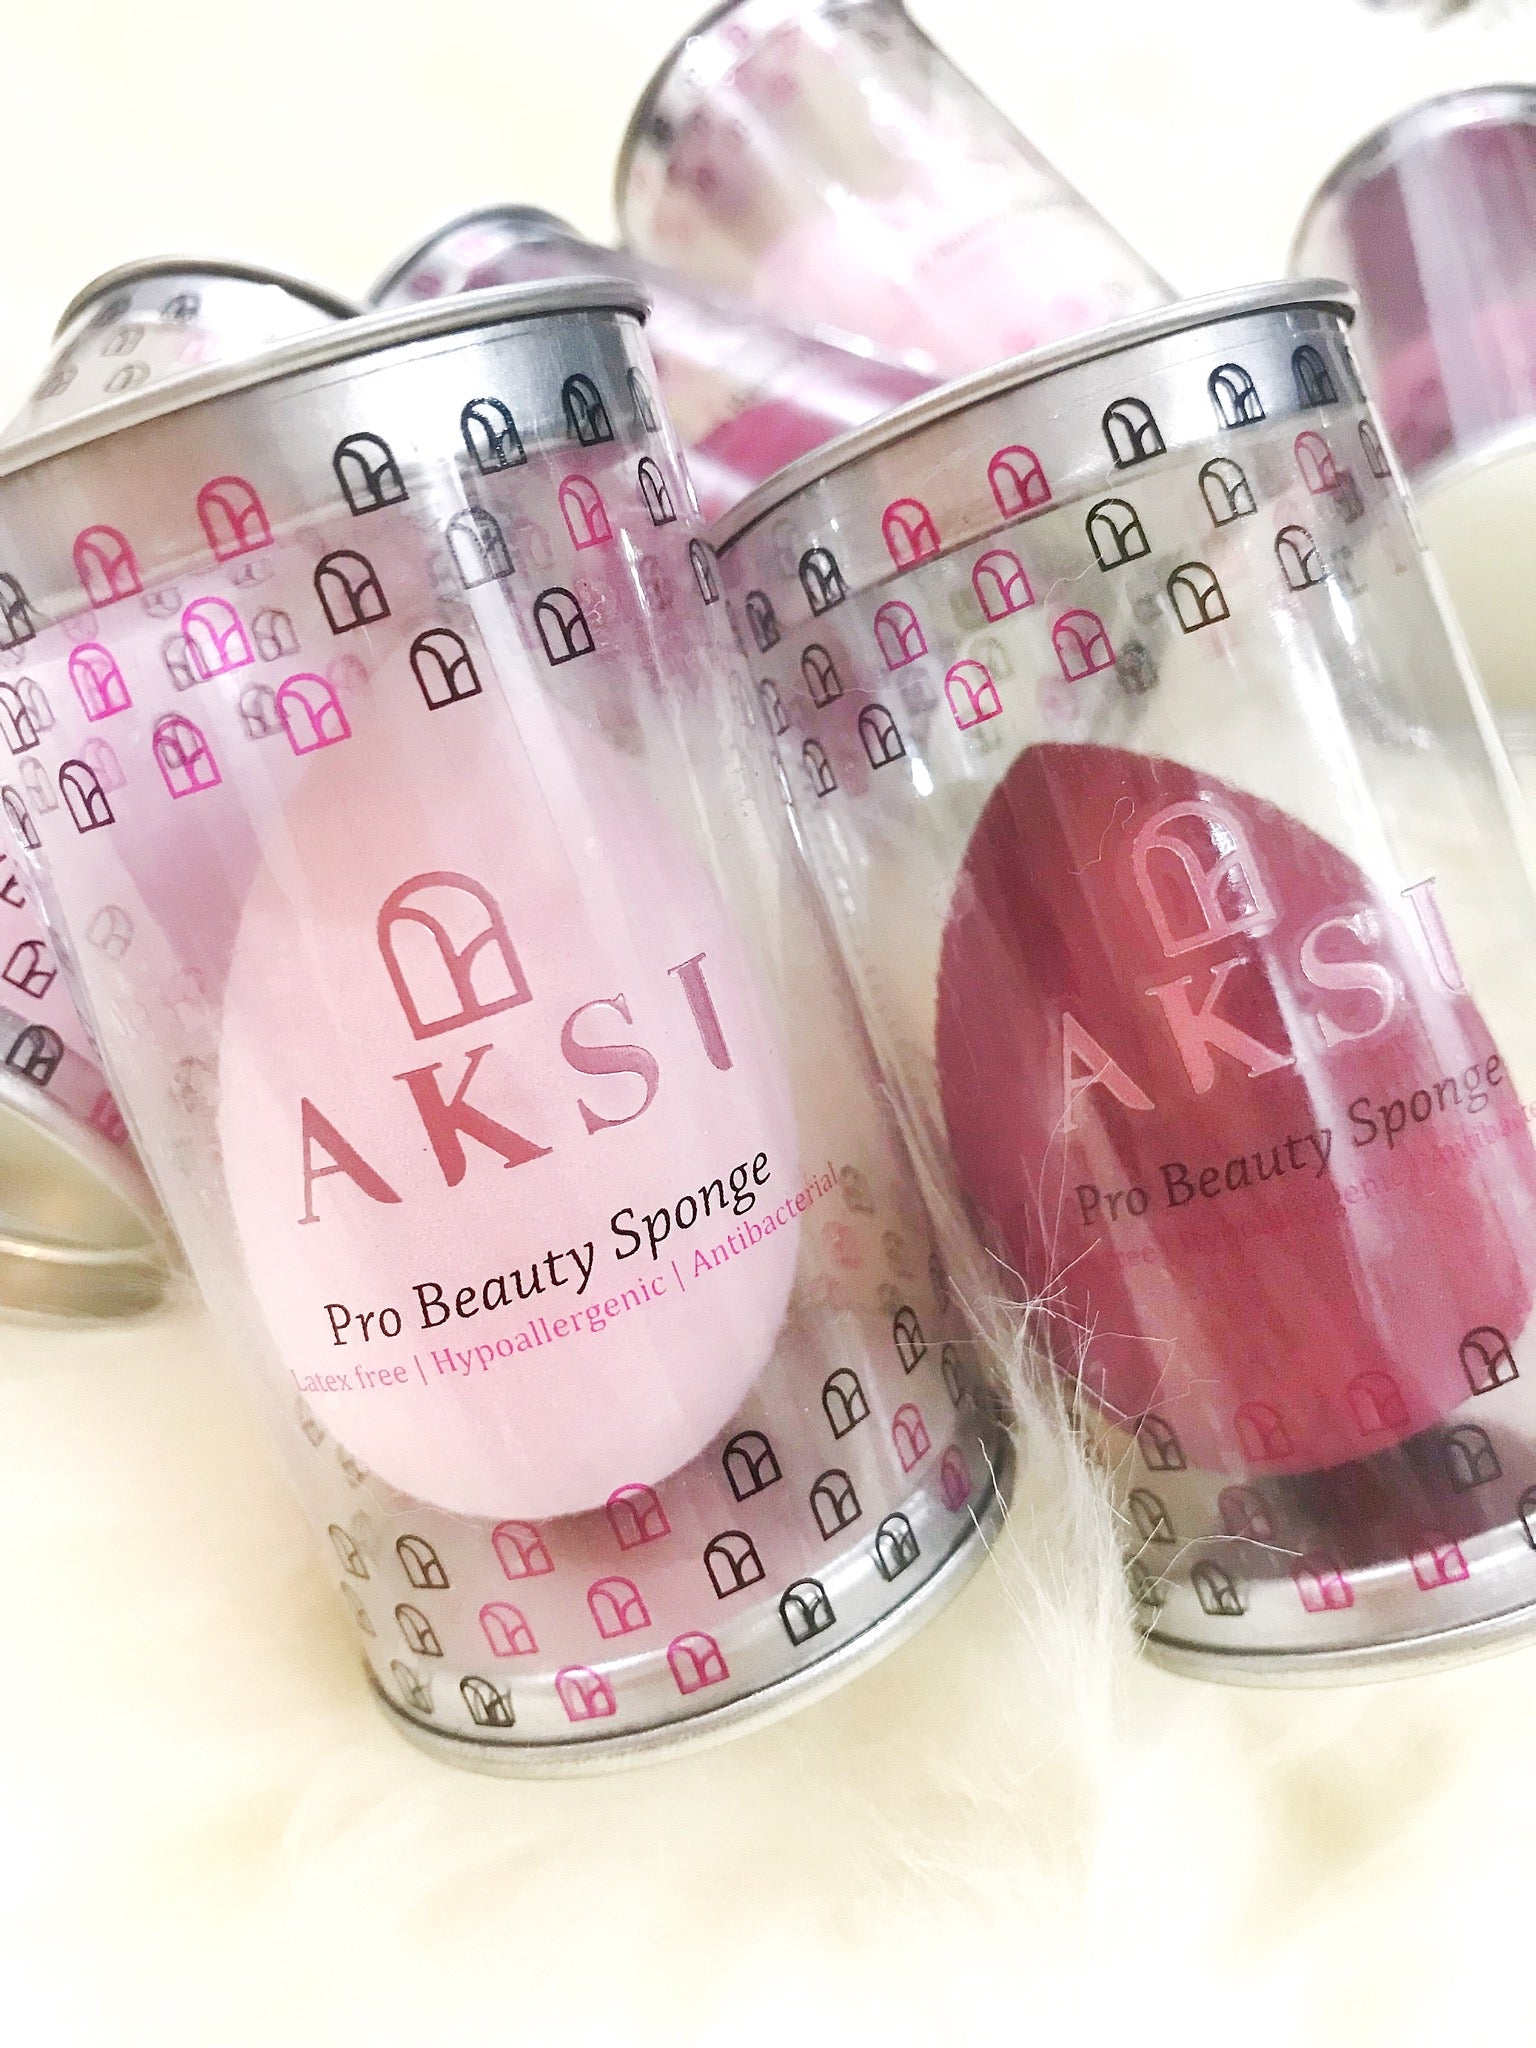 AKSI Pro Beauty Sponge (soft pink) - AKSI Beauty